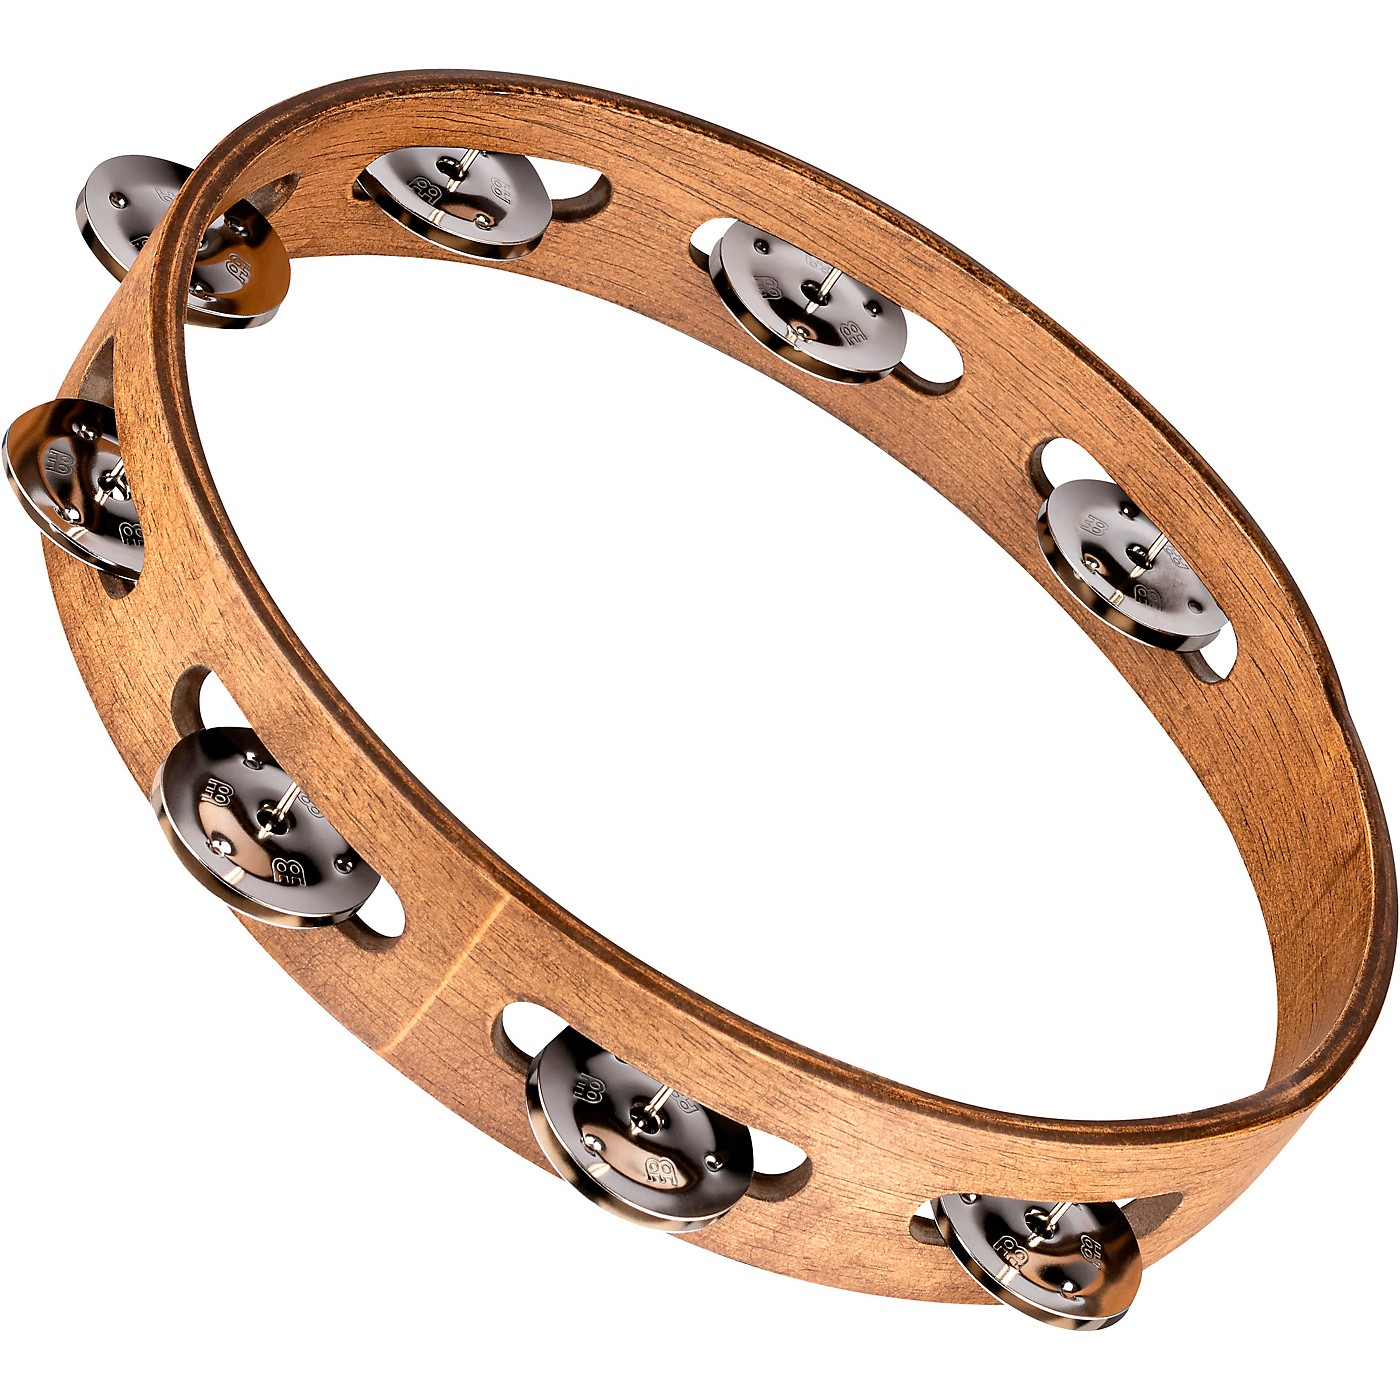 Meinl Wood Tambourine with Single Row Stainless Steel Jingles thumbnail